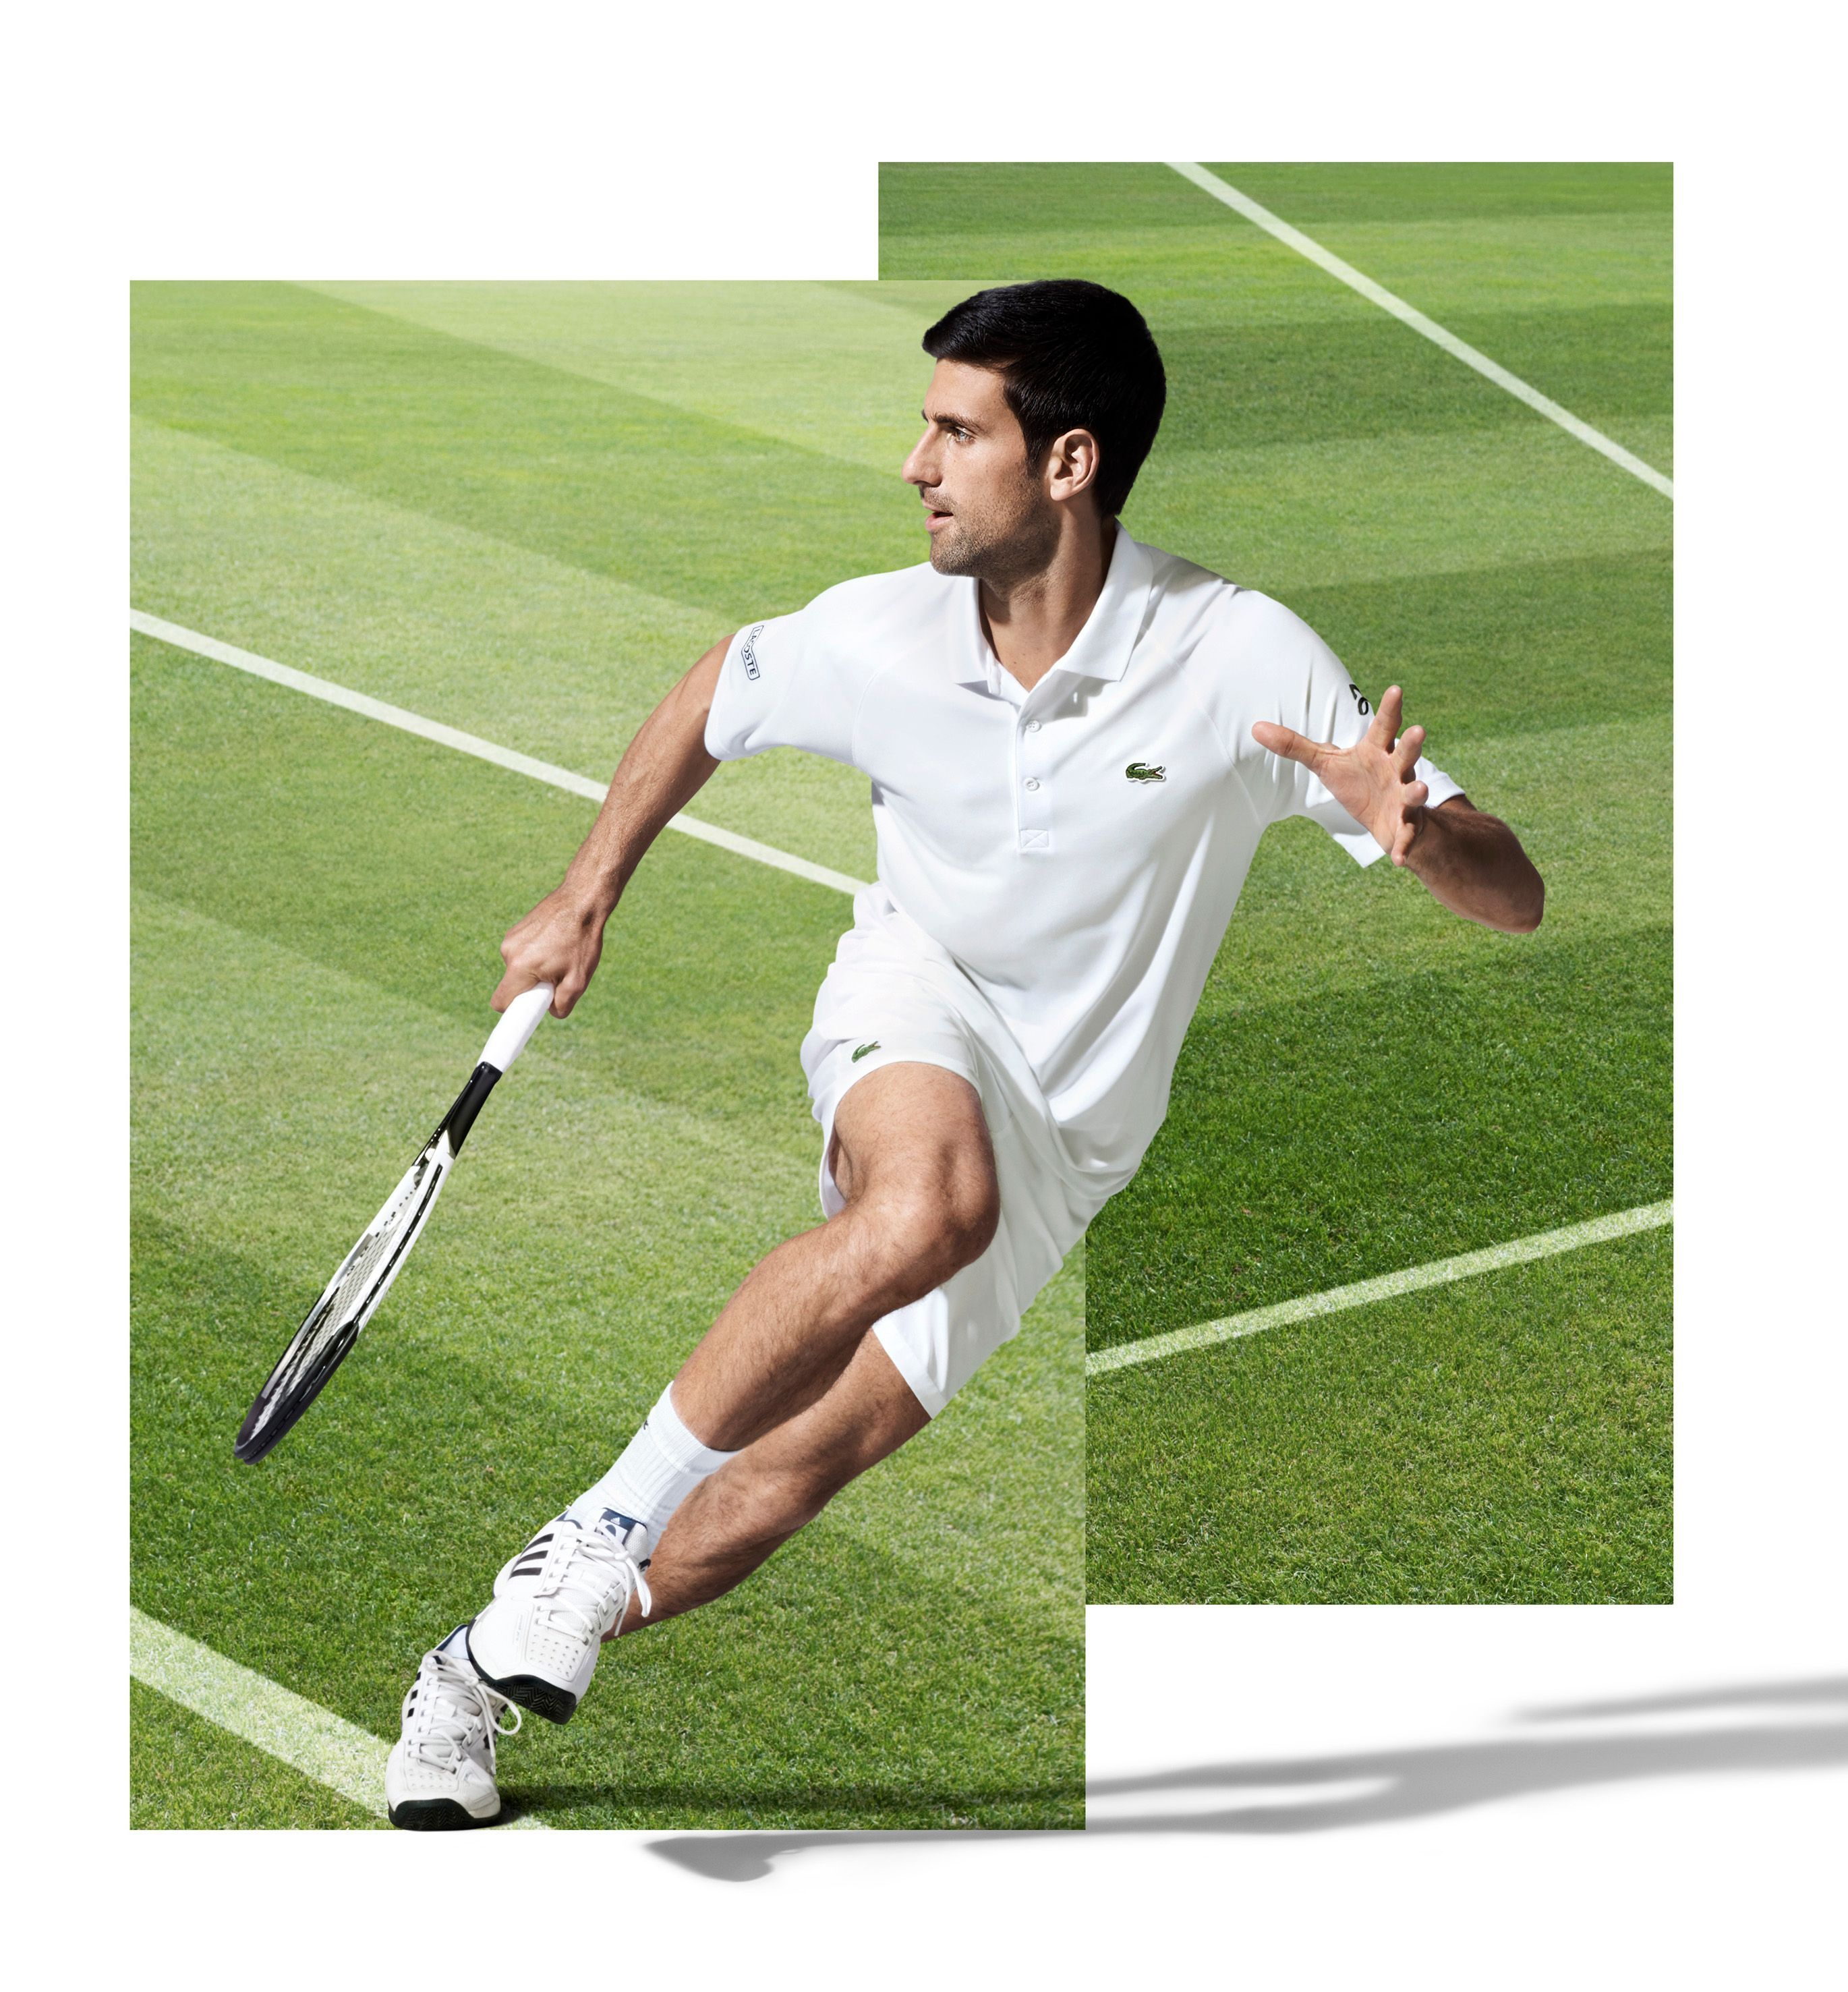 003_LACOSTE_NOVAK_DJOKOVIC_COLLECTION_GREEN_EDITION_BRITISH_OPEN